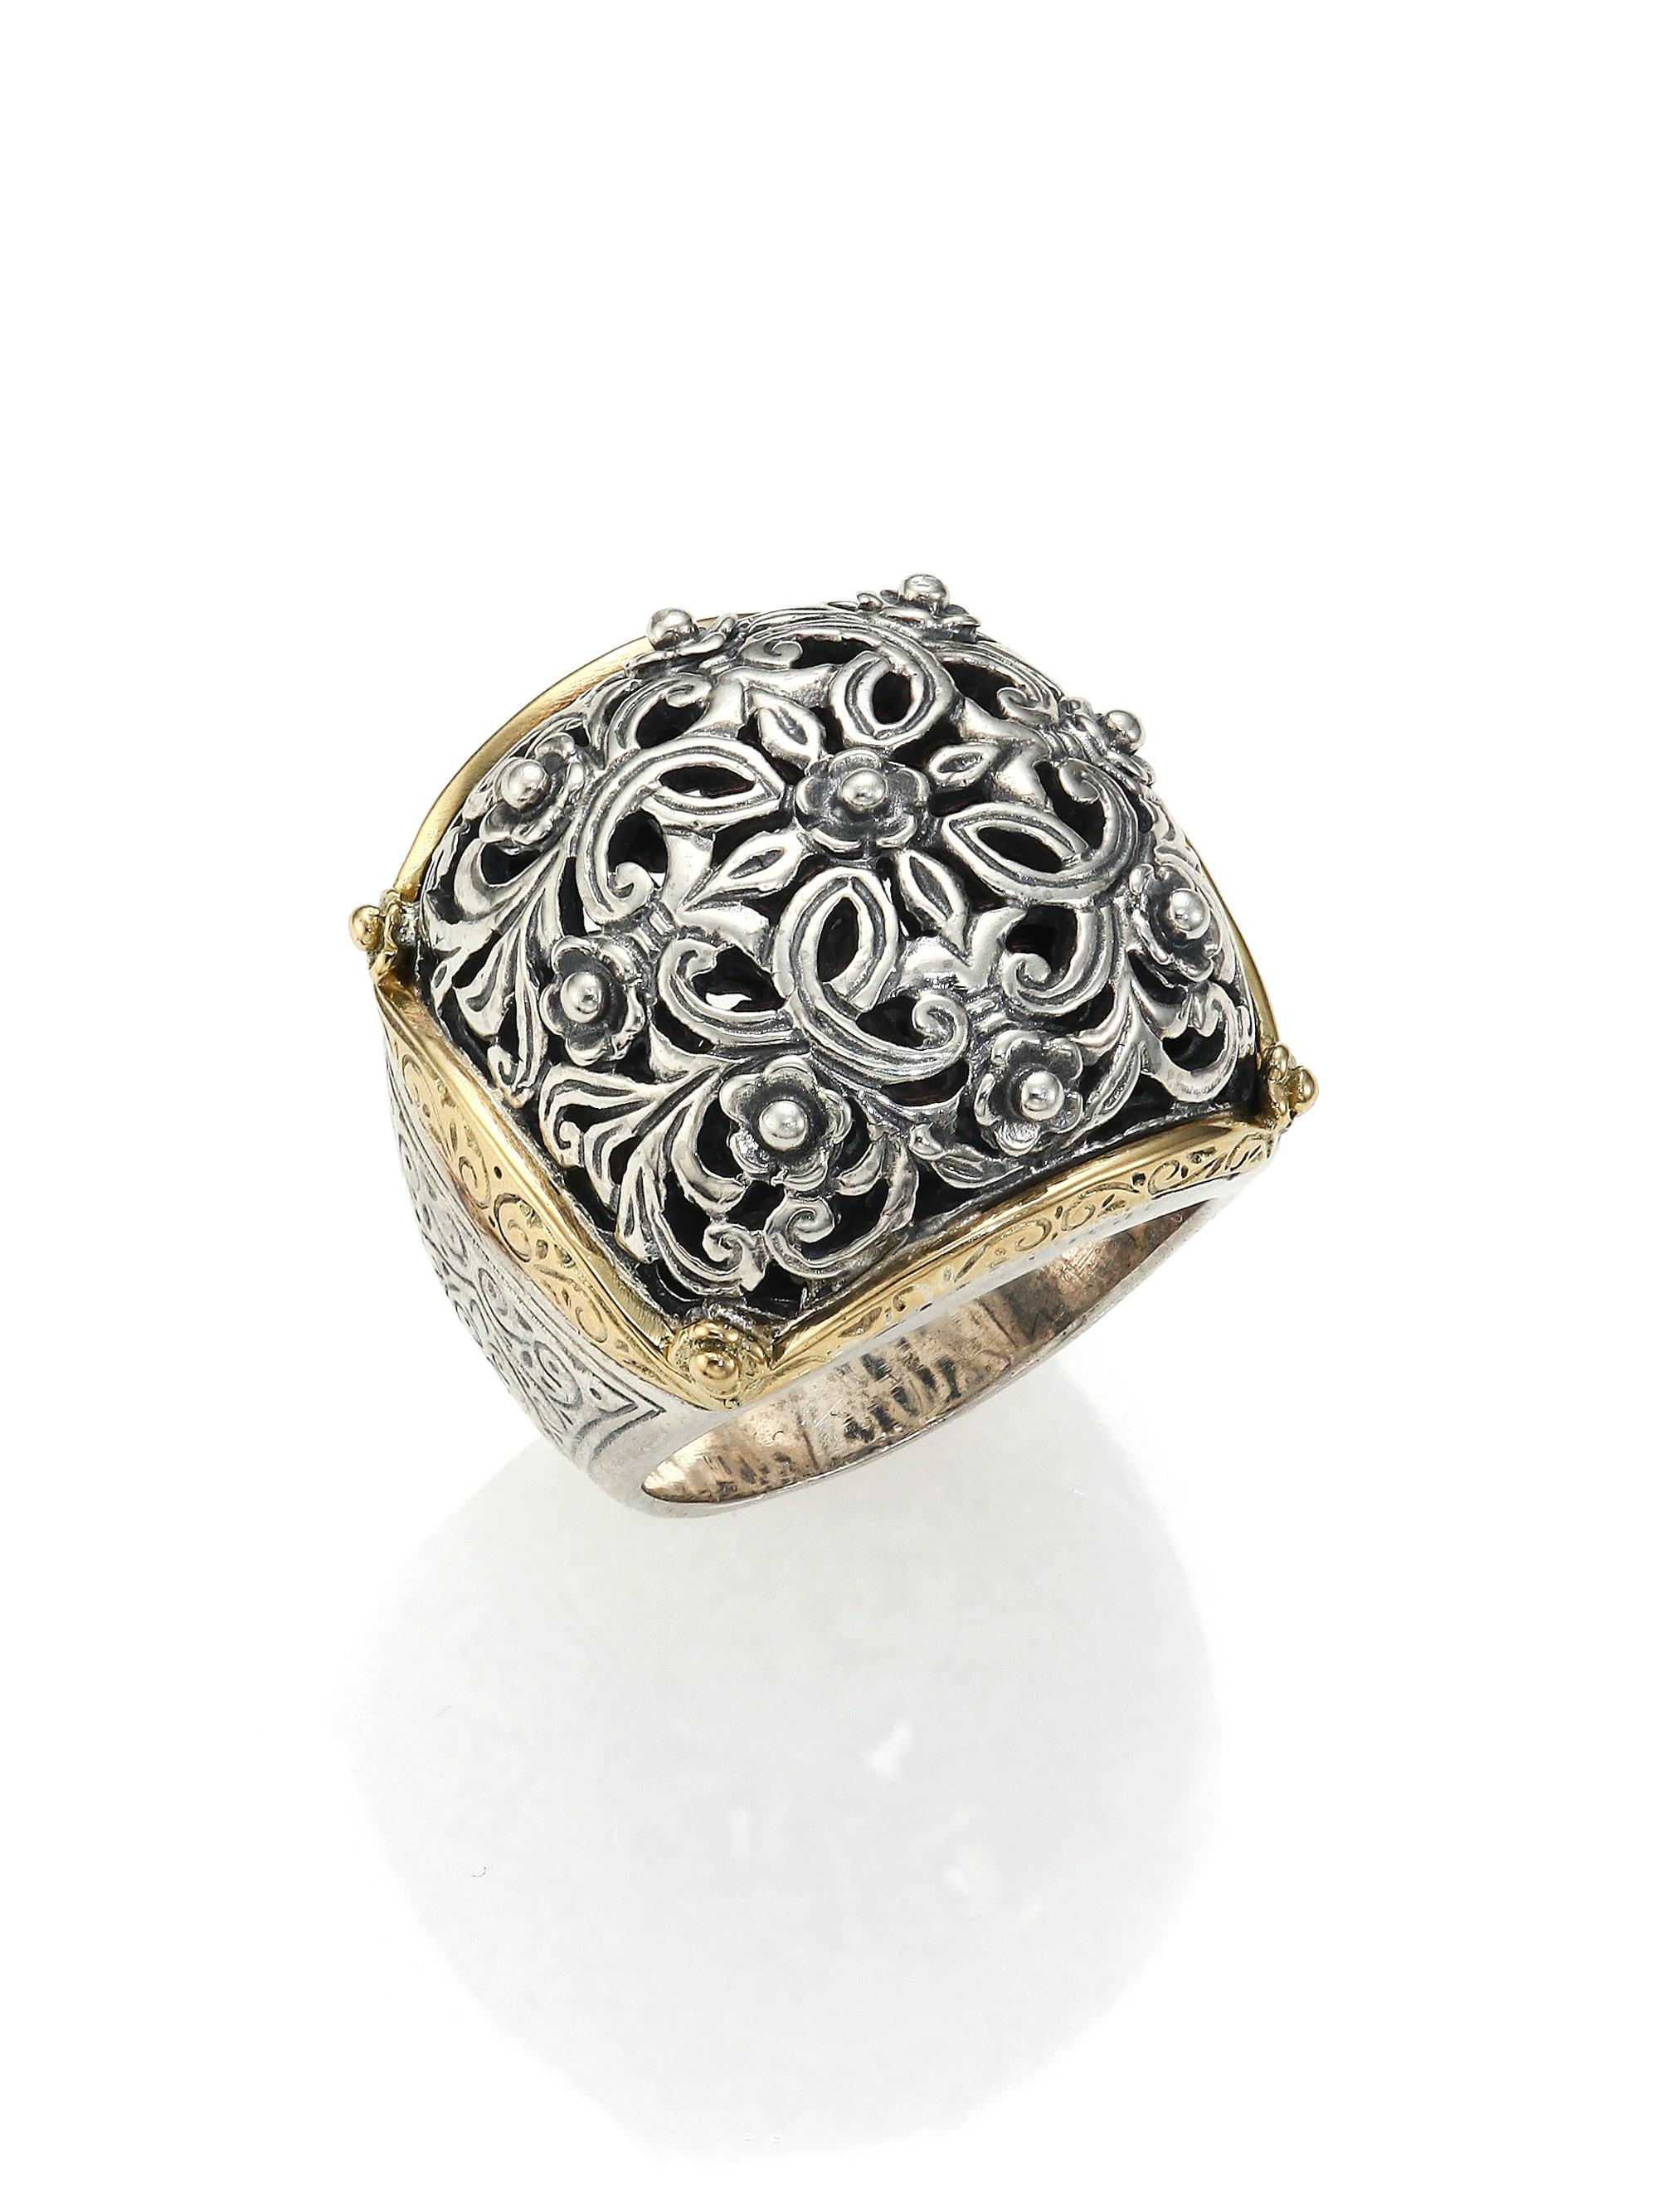 bands htm ahg filigree silverringoctagoncz octagon ring item web